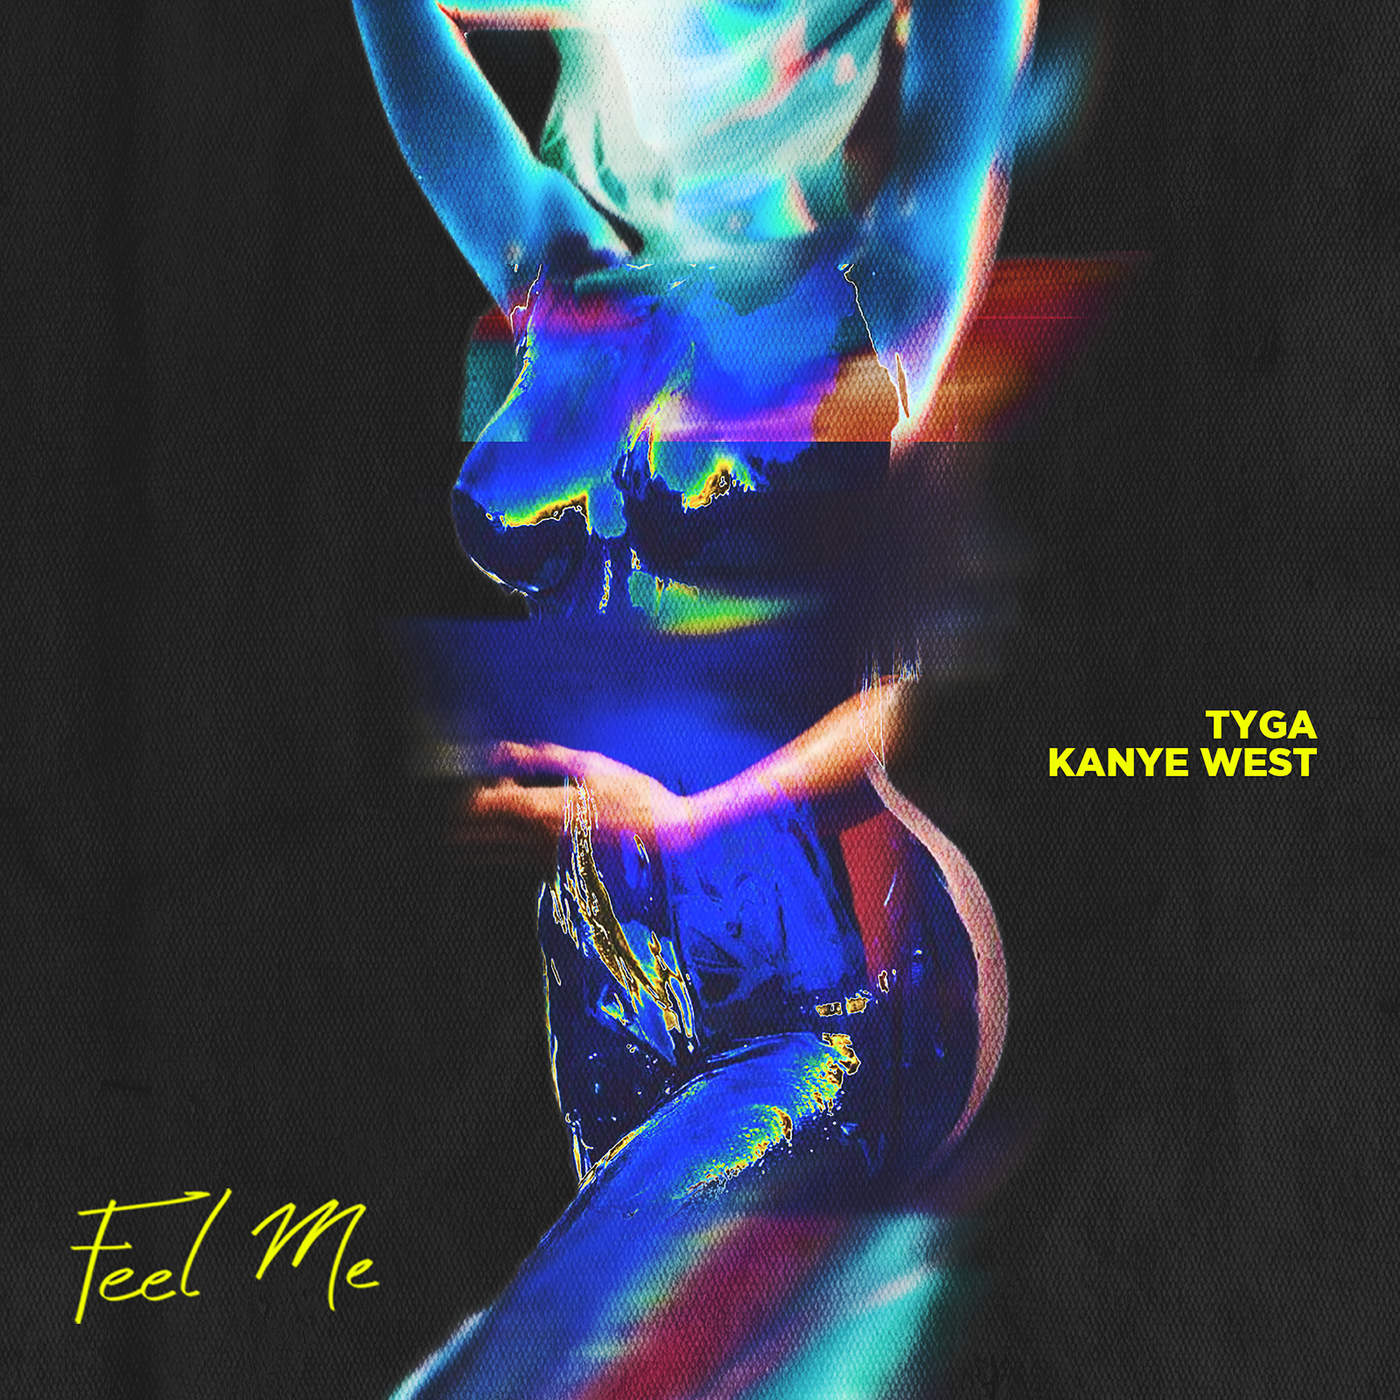 tyga-feel-me-feat-kanye-west-new-song